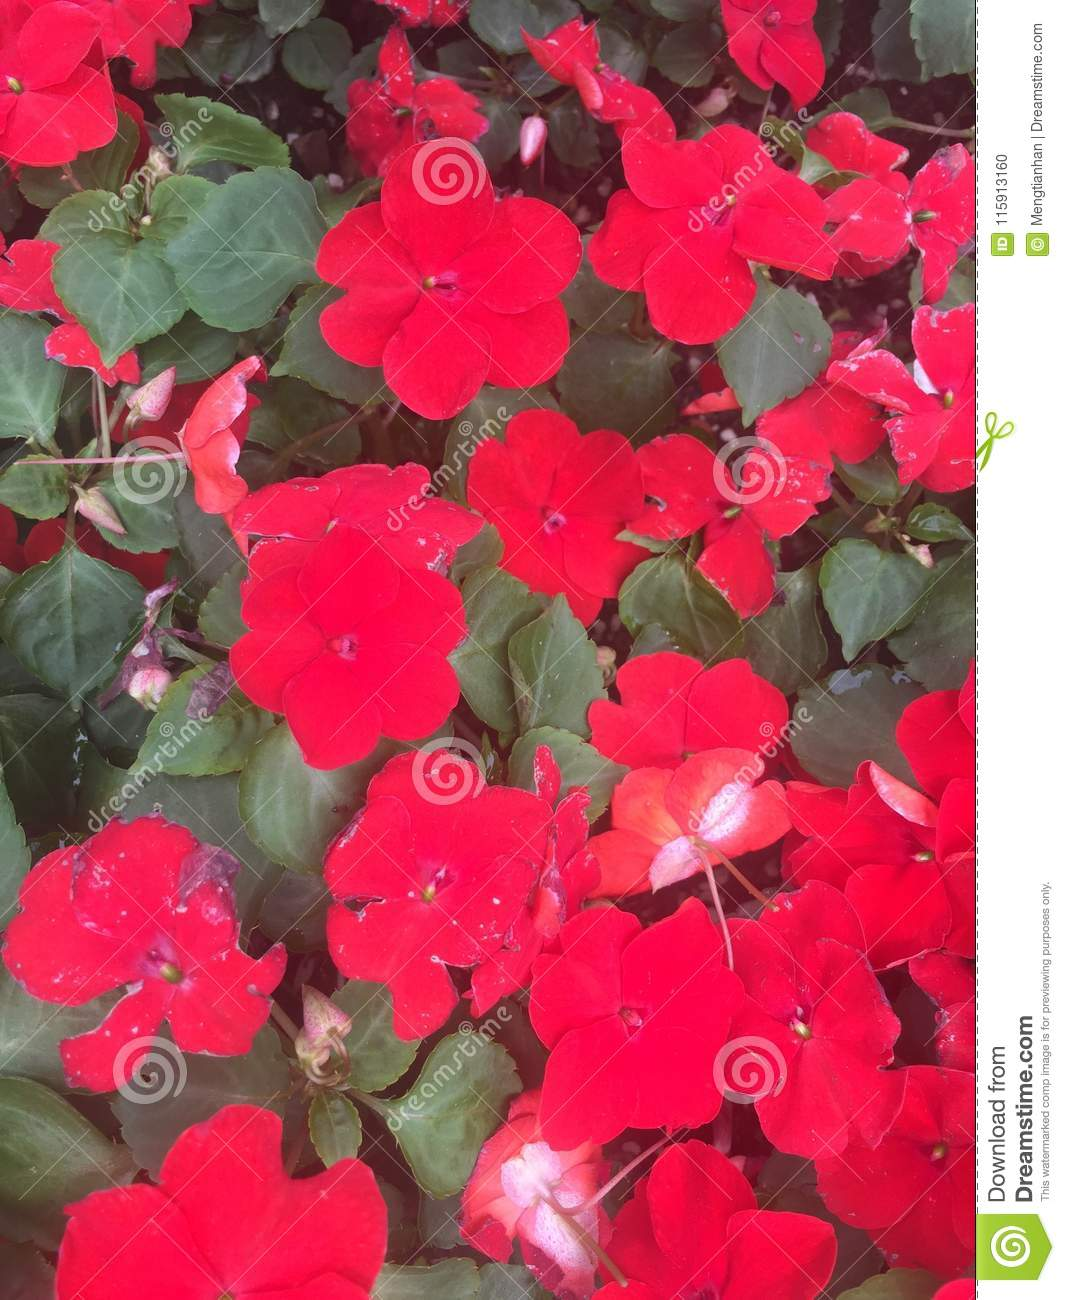 Garden Balsam Impatiens Balsamina L Stock Photo Image Of Colorful